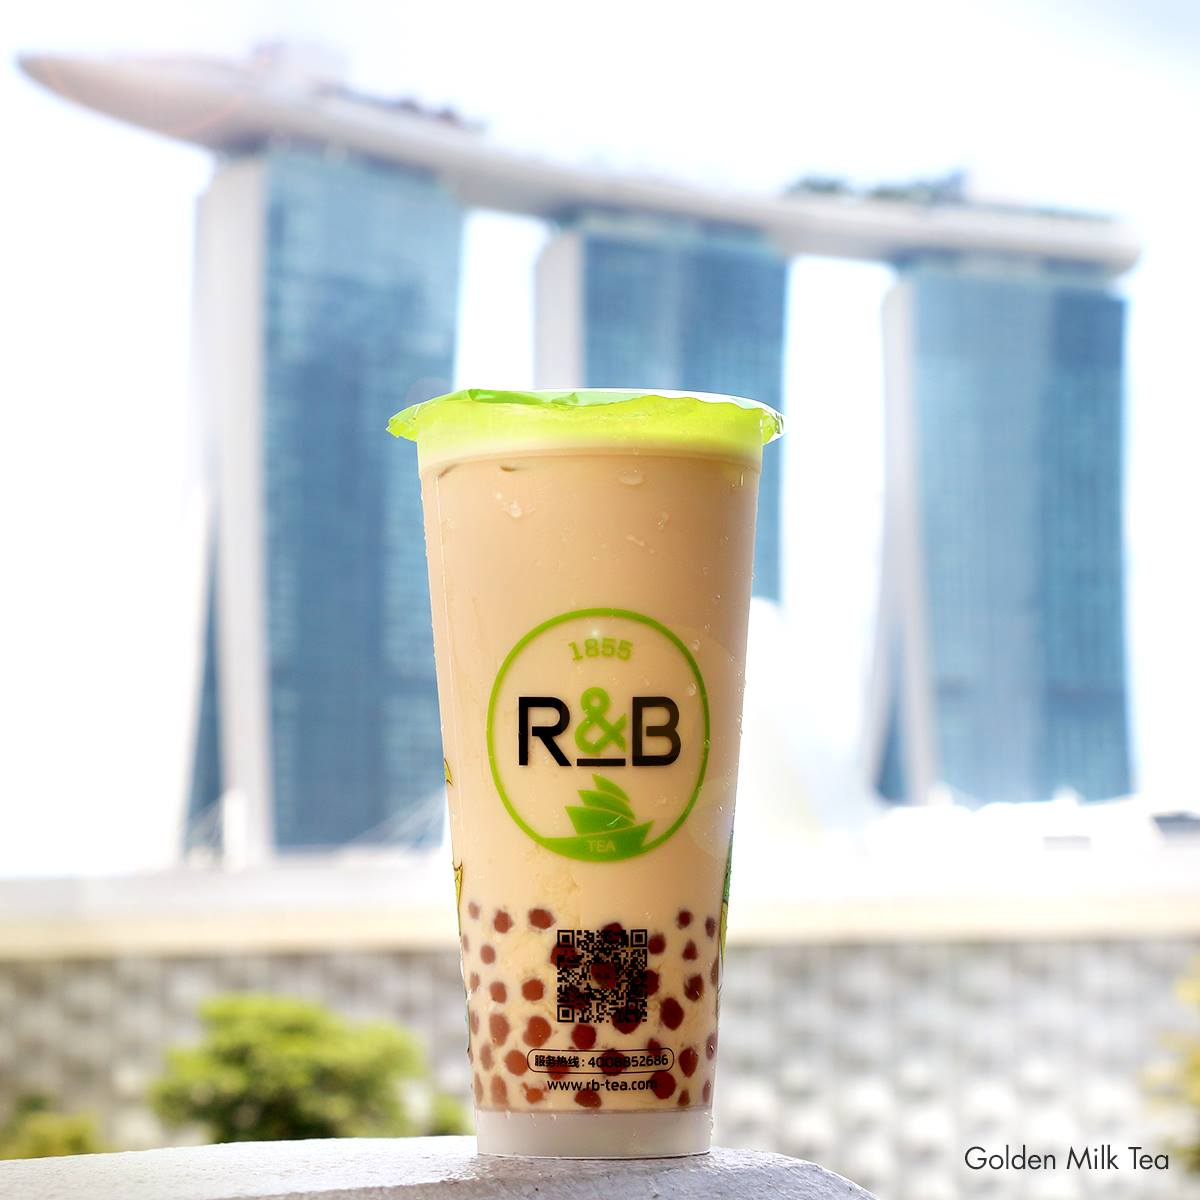 Golden milk tea R&B Singapore